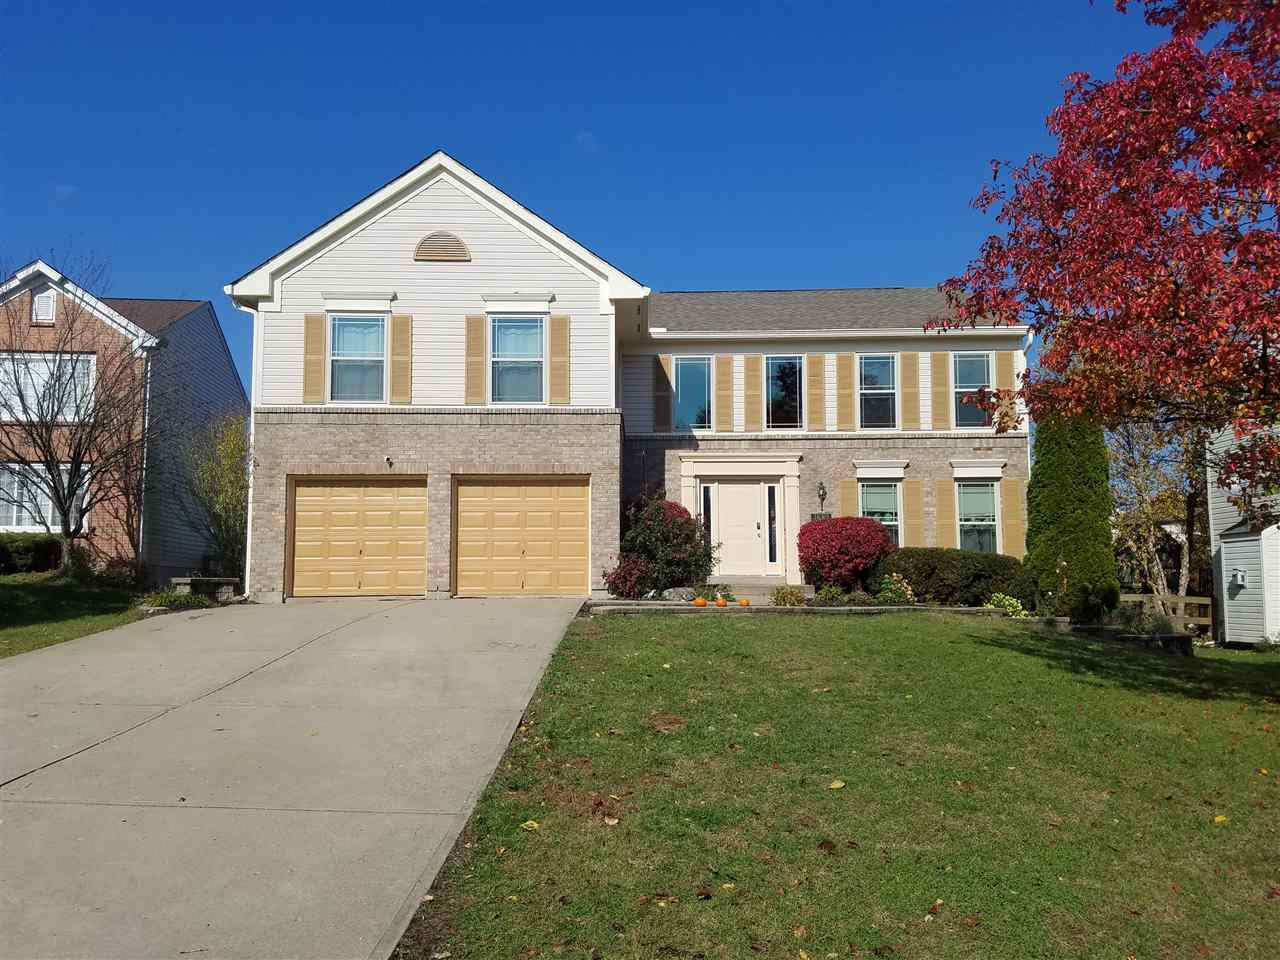 Photo 1 for 1682 Colonade Dr Florence, KY 41042